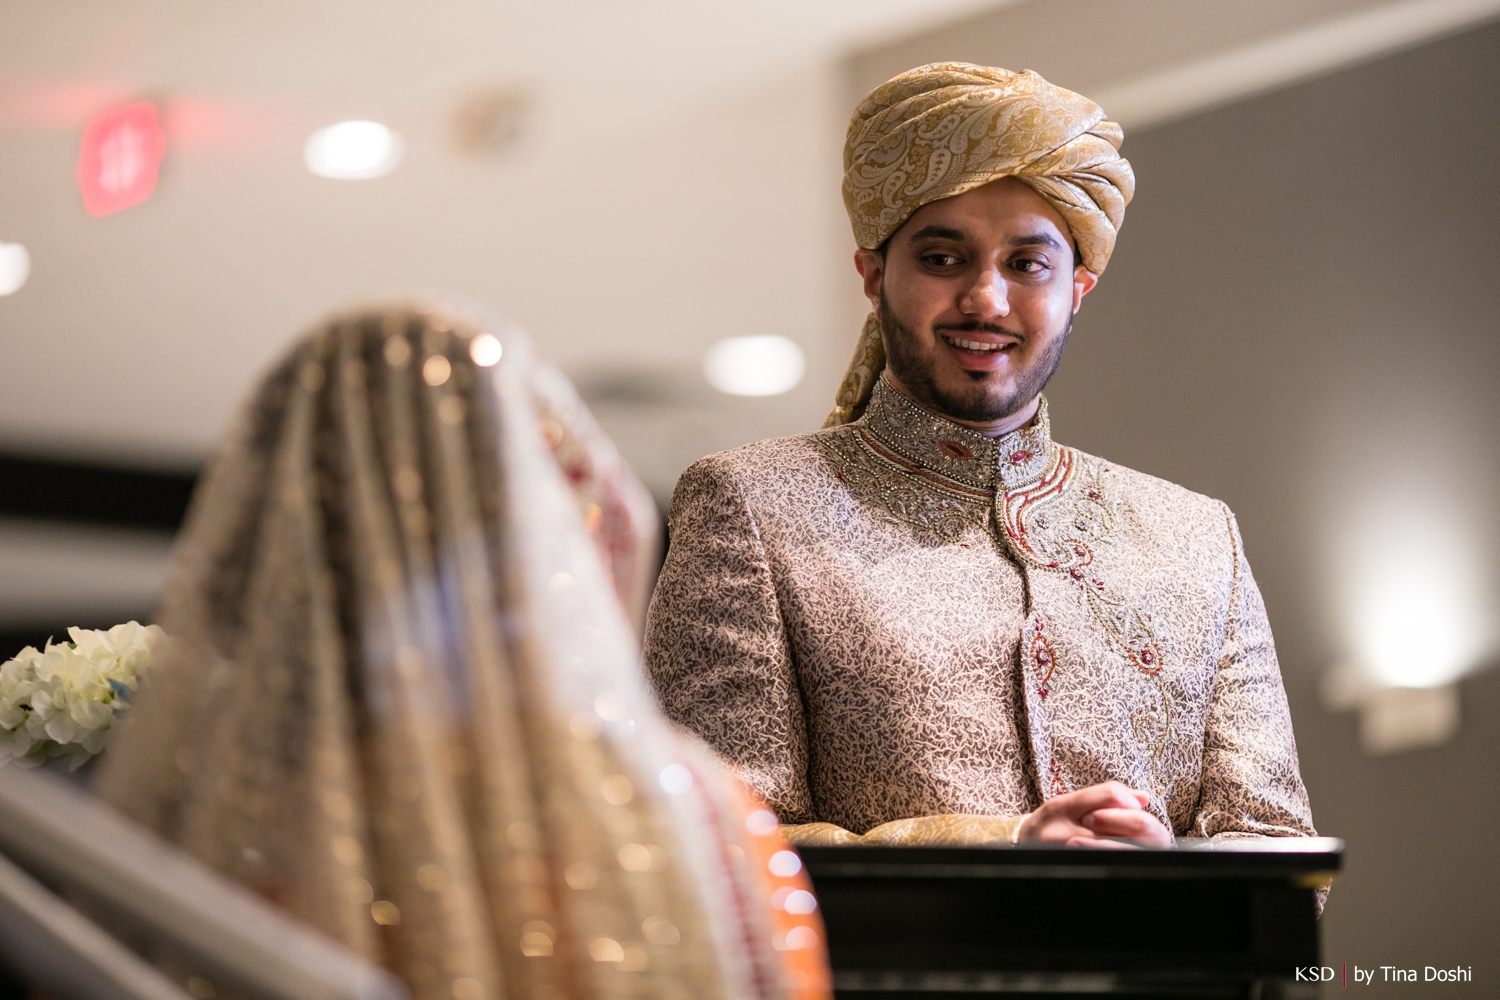 nj_south_asian_wedding_0026